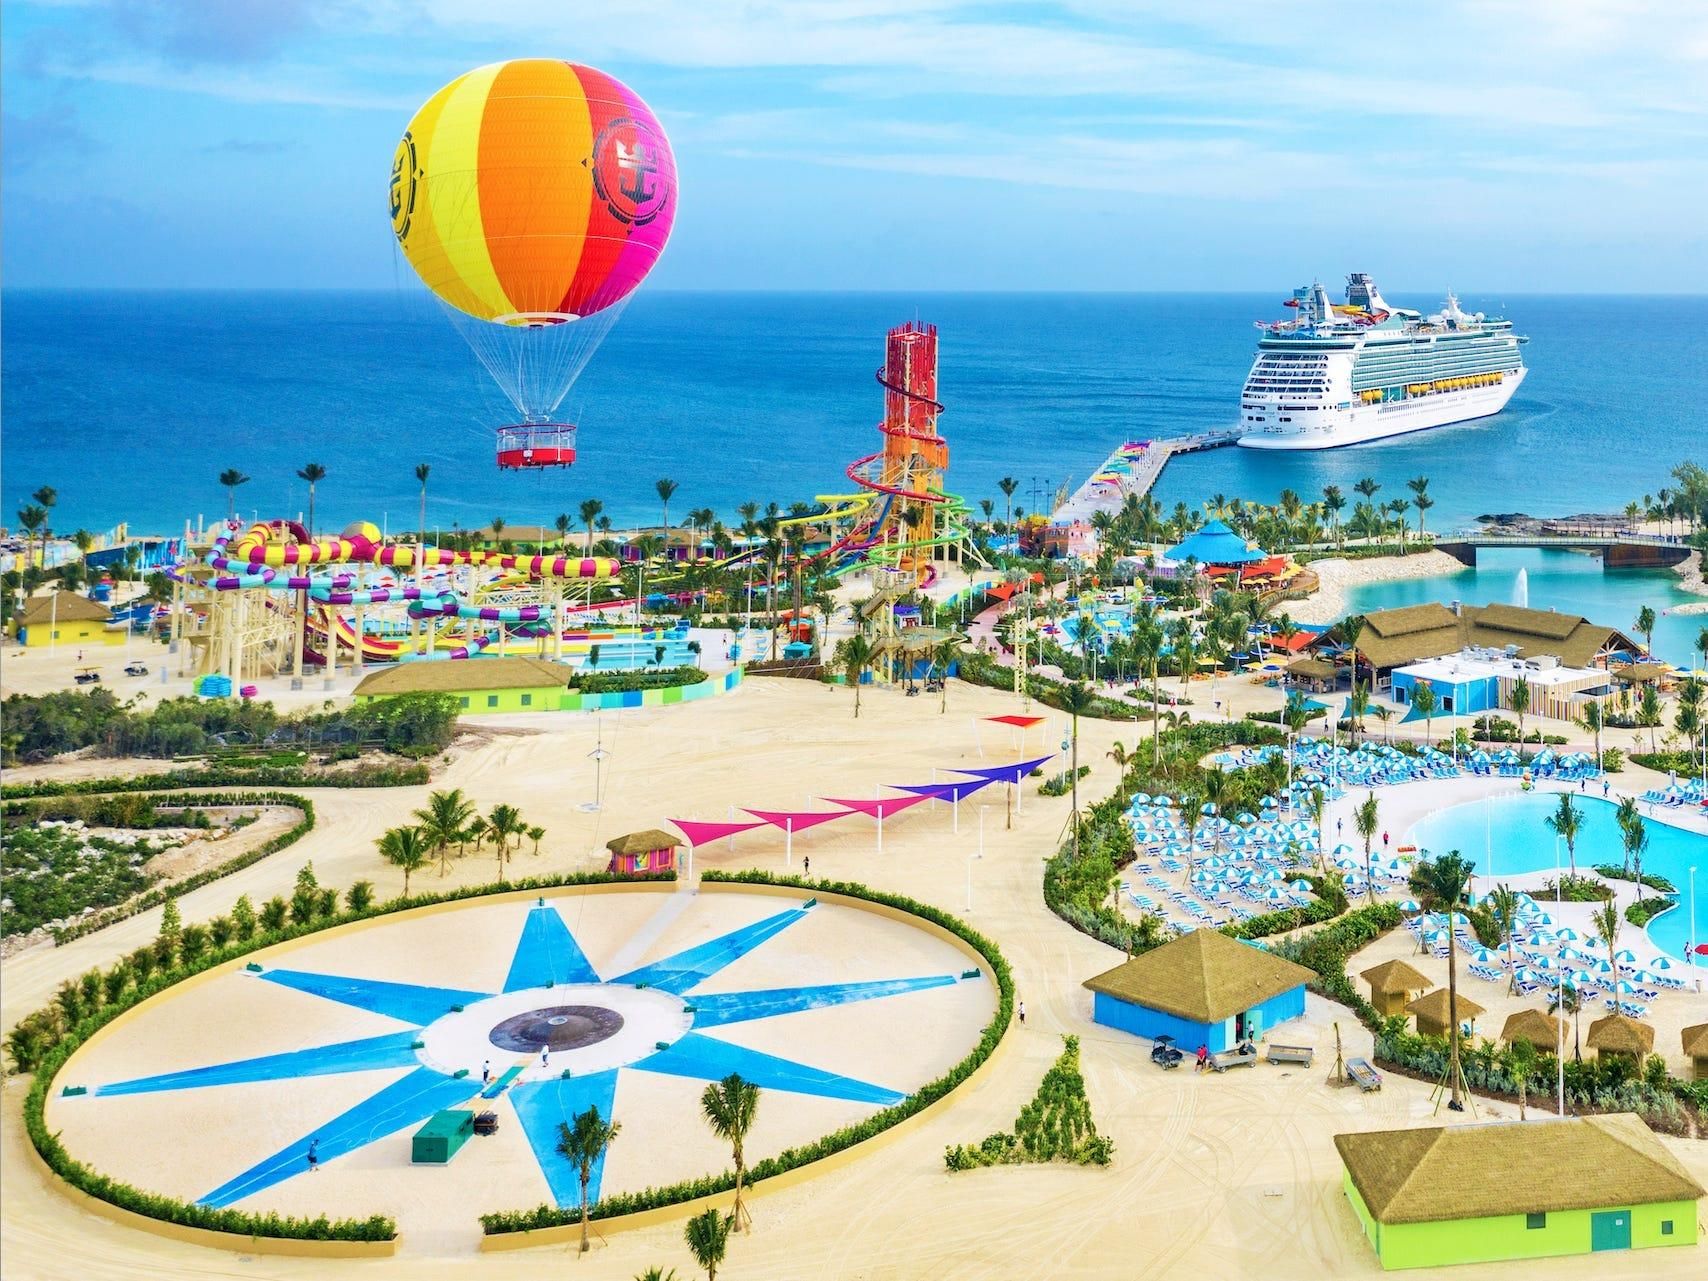 Royal Caribbean just announced 'fully vaccinated' cruises to the Bahamas